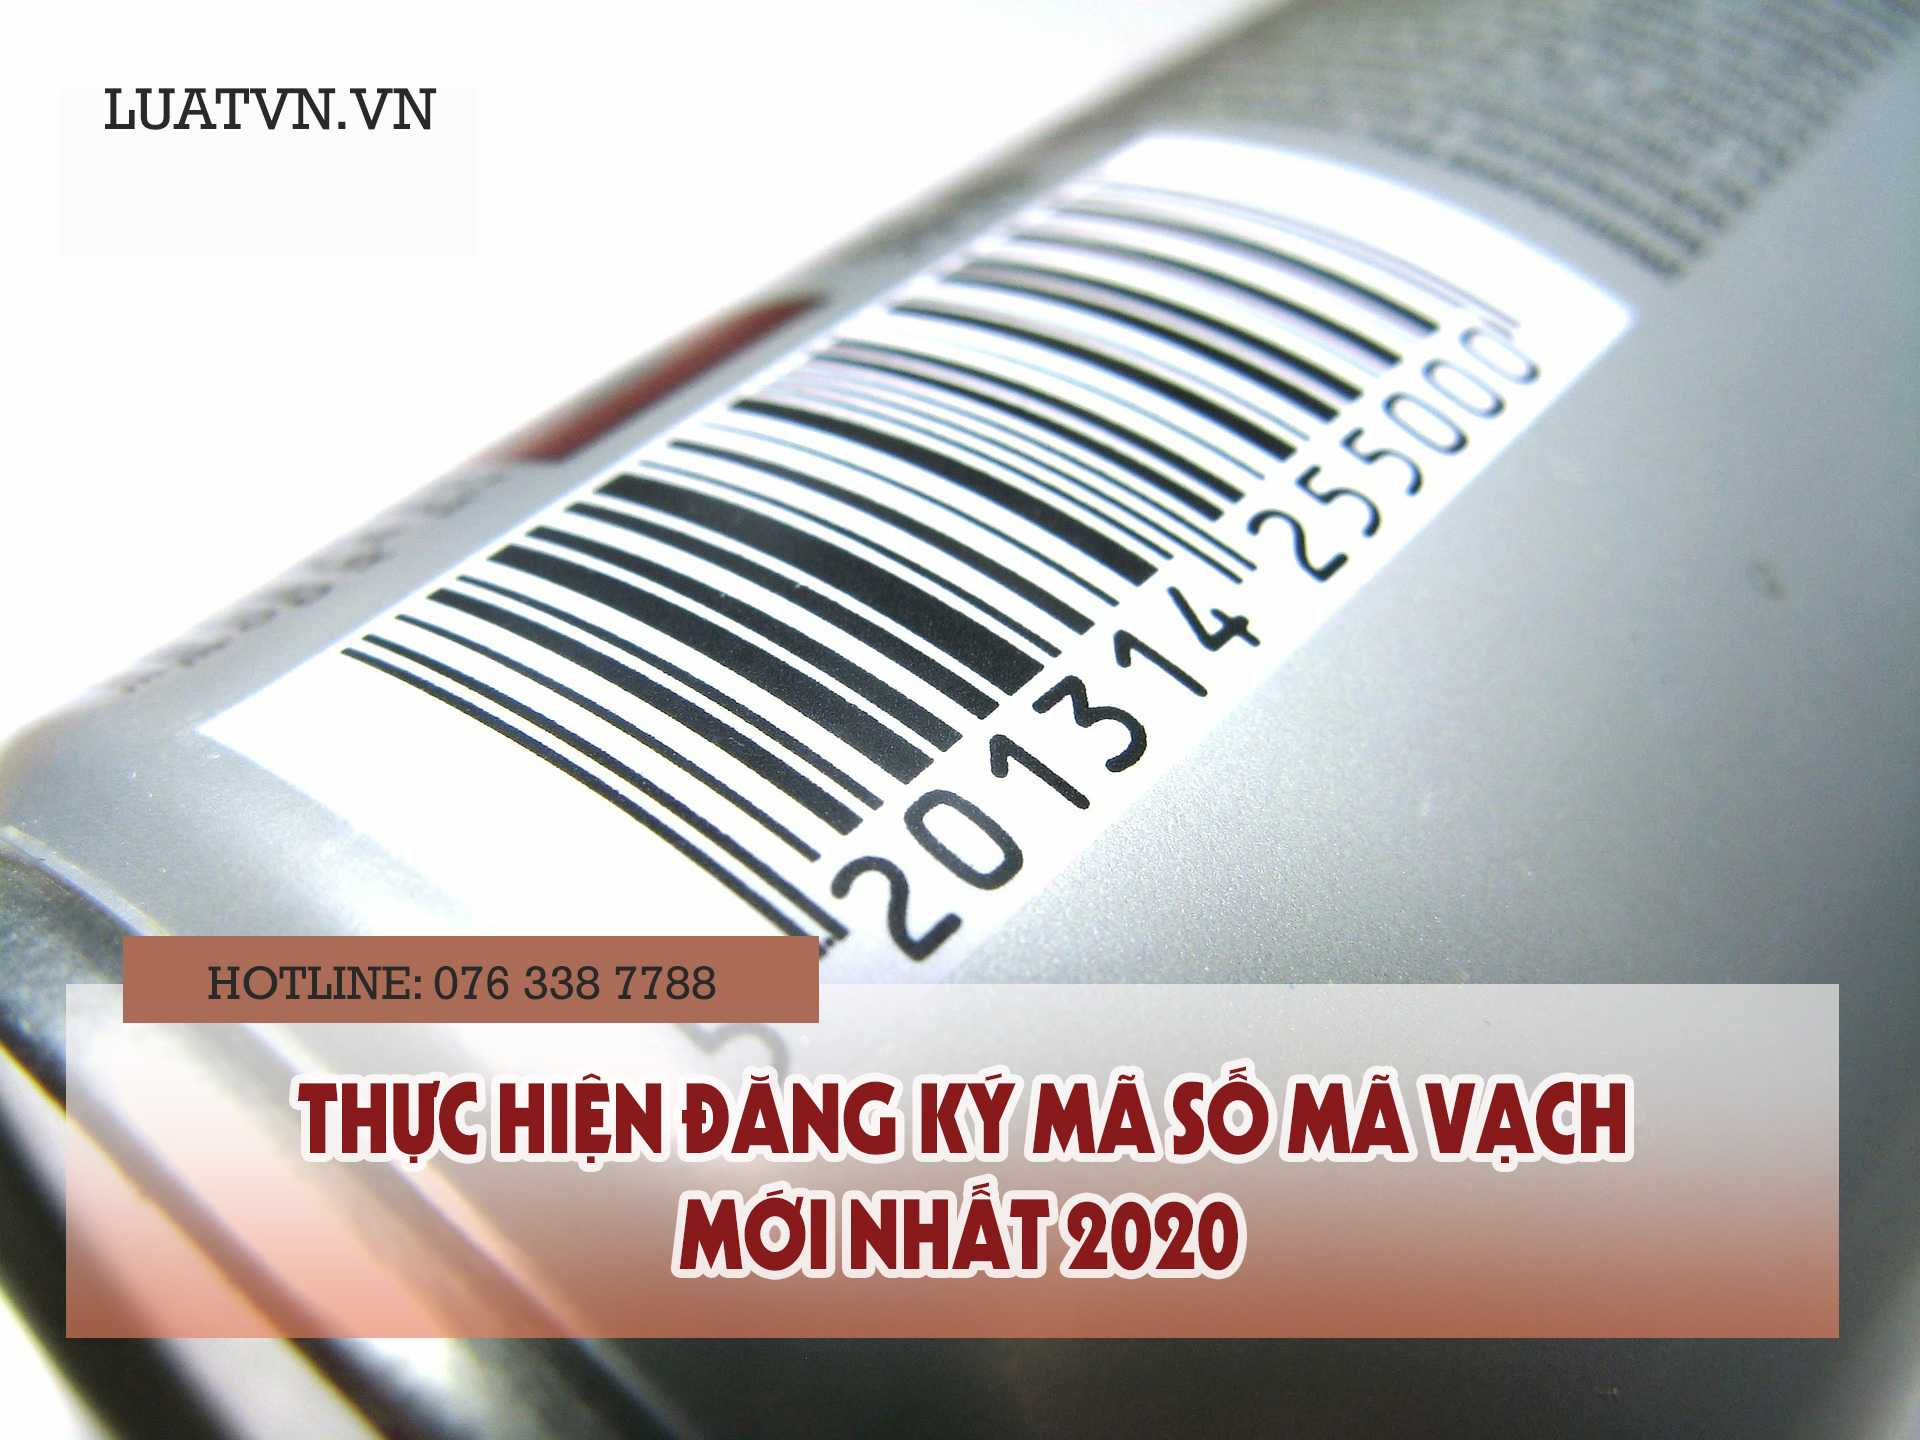 muc-le-phi-nha-nuoc-dang-ky-ma-vach-nam-2020